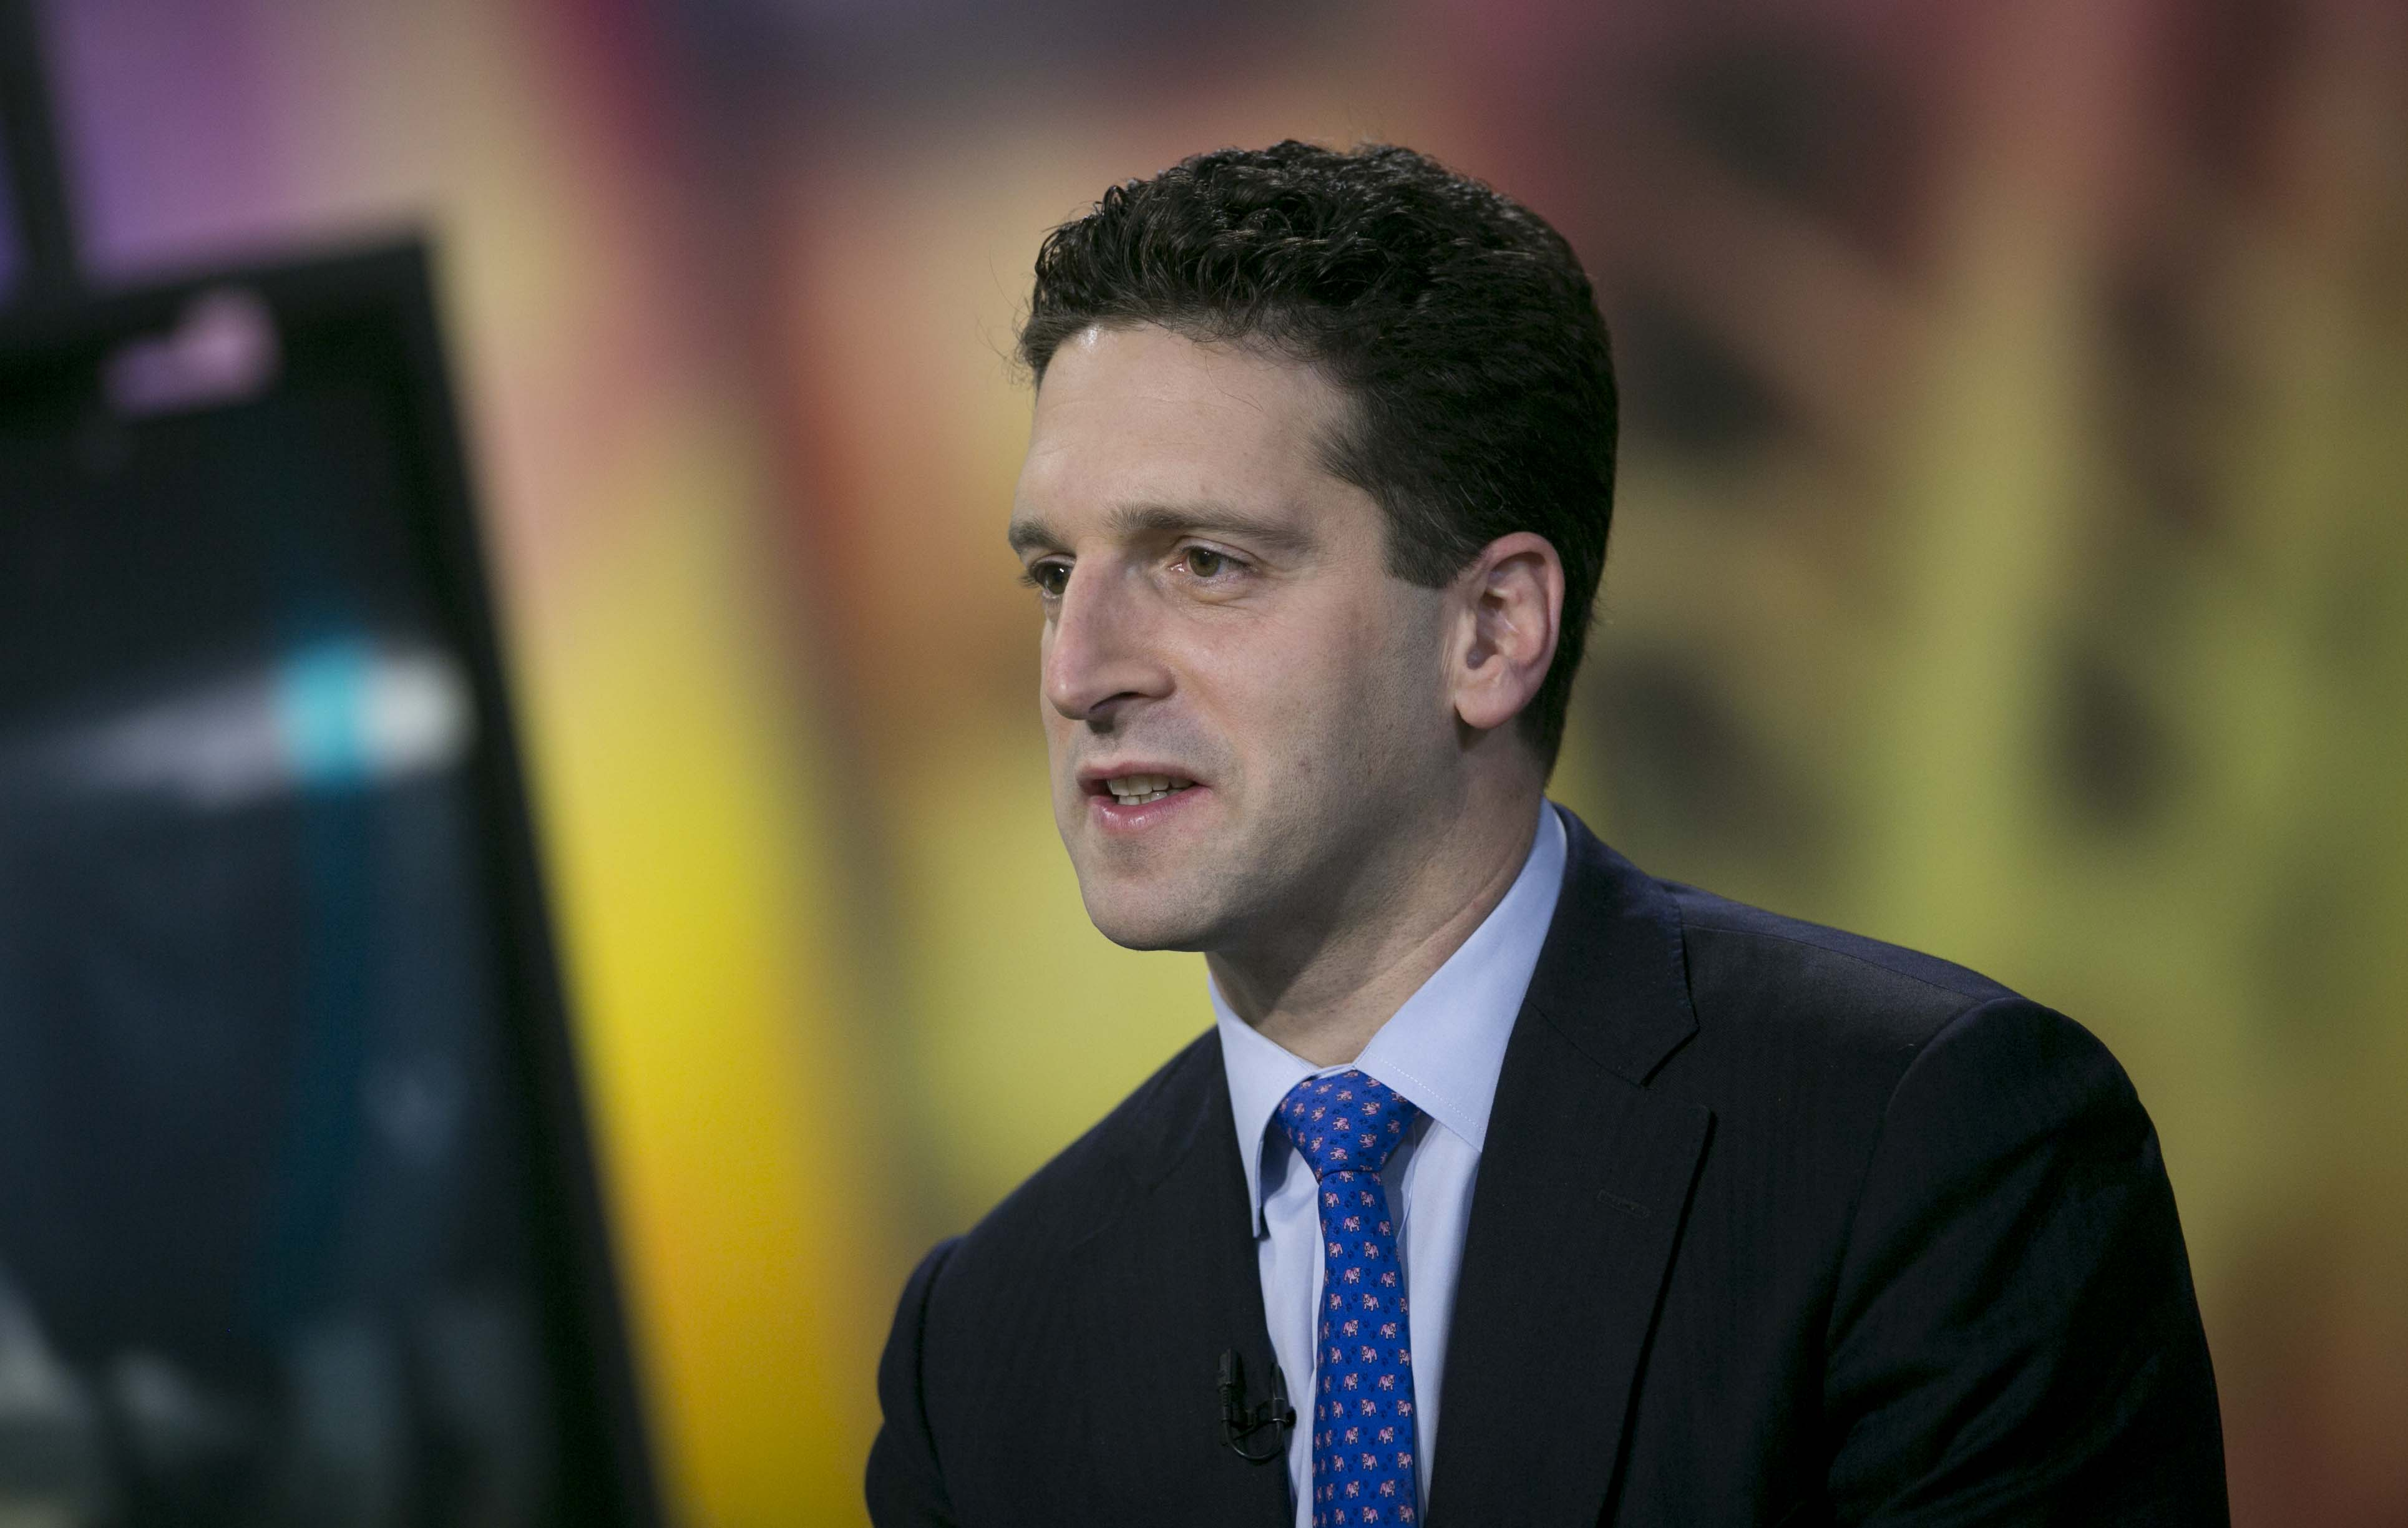 Benjamin Lawsky superintendent of the New York State Department of Financial Services, speaks during a Bloomberg Television interview in New York on Nov. 24, 2014.